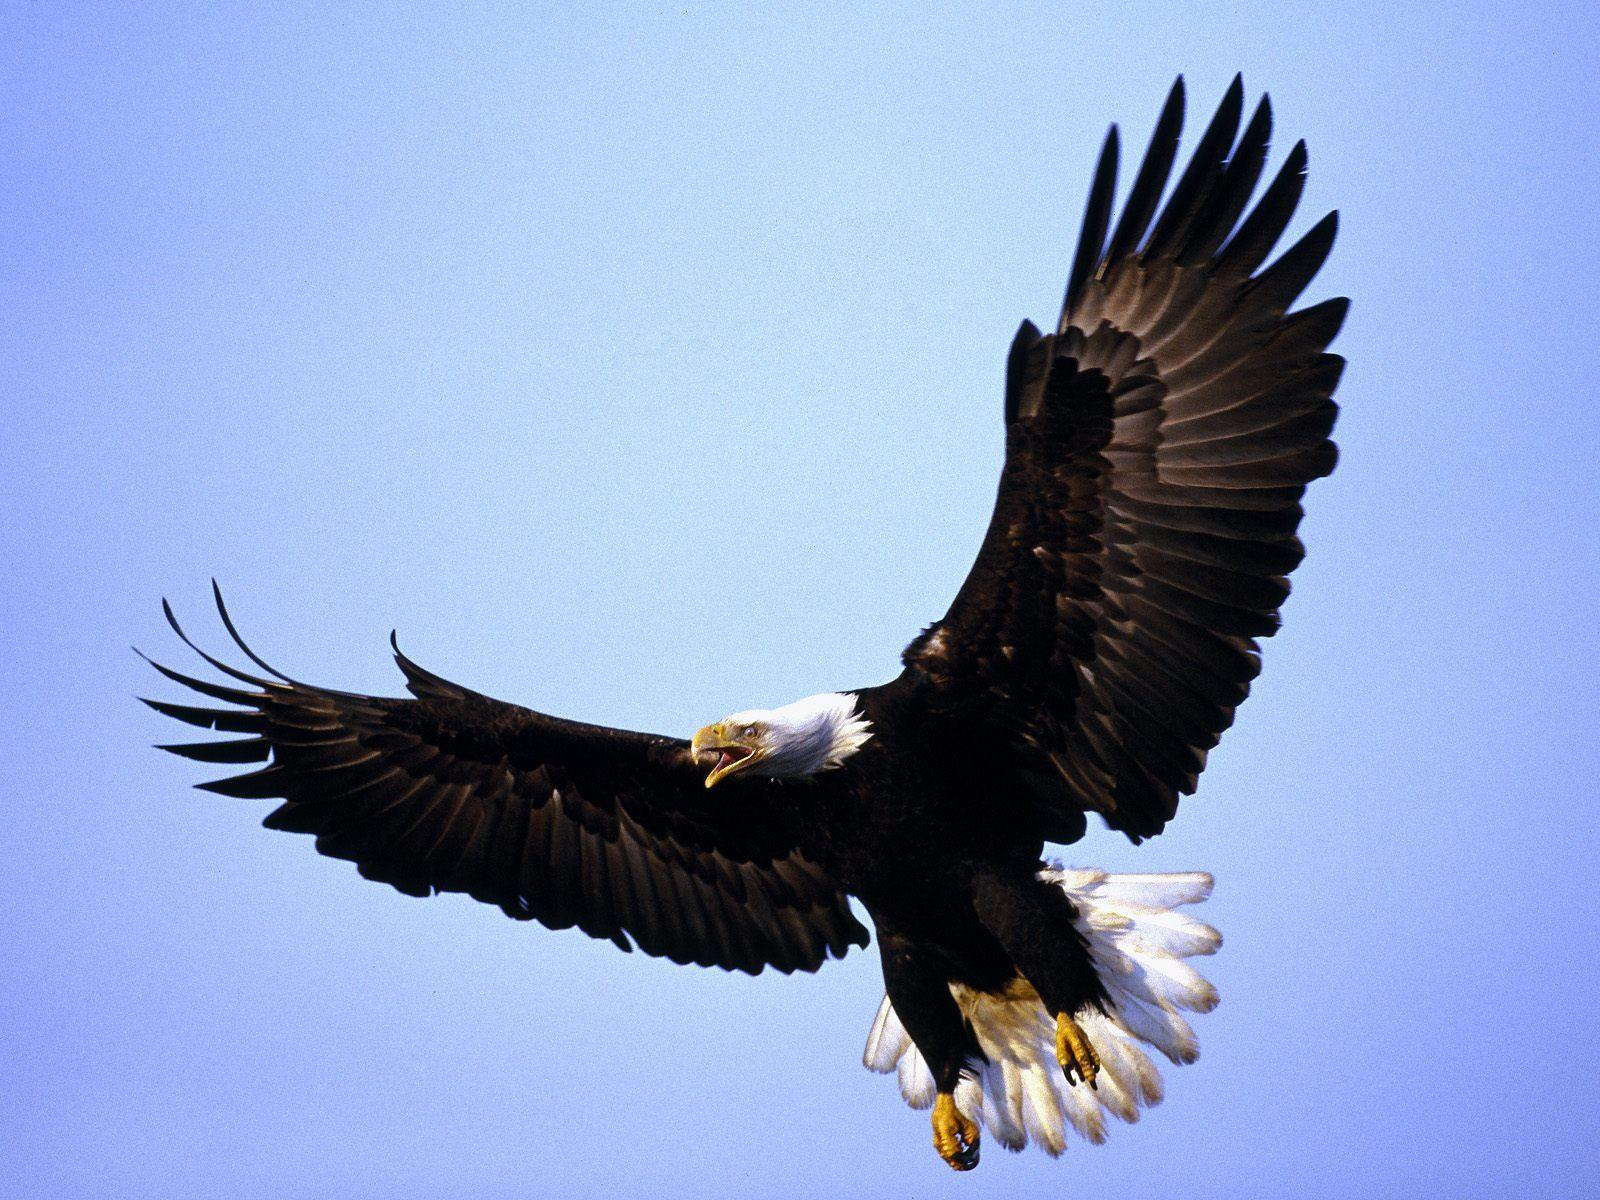 Flying image of hd bald eagle wallpapers